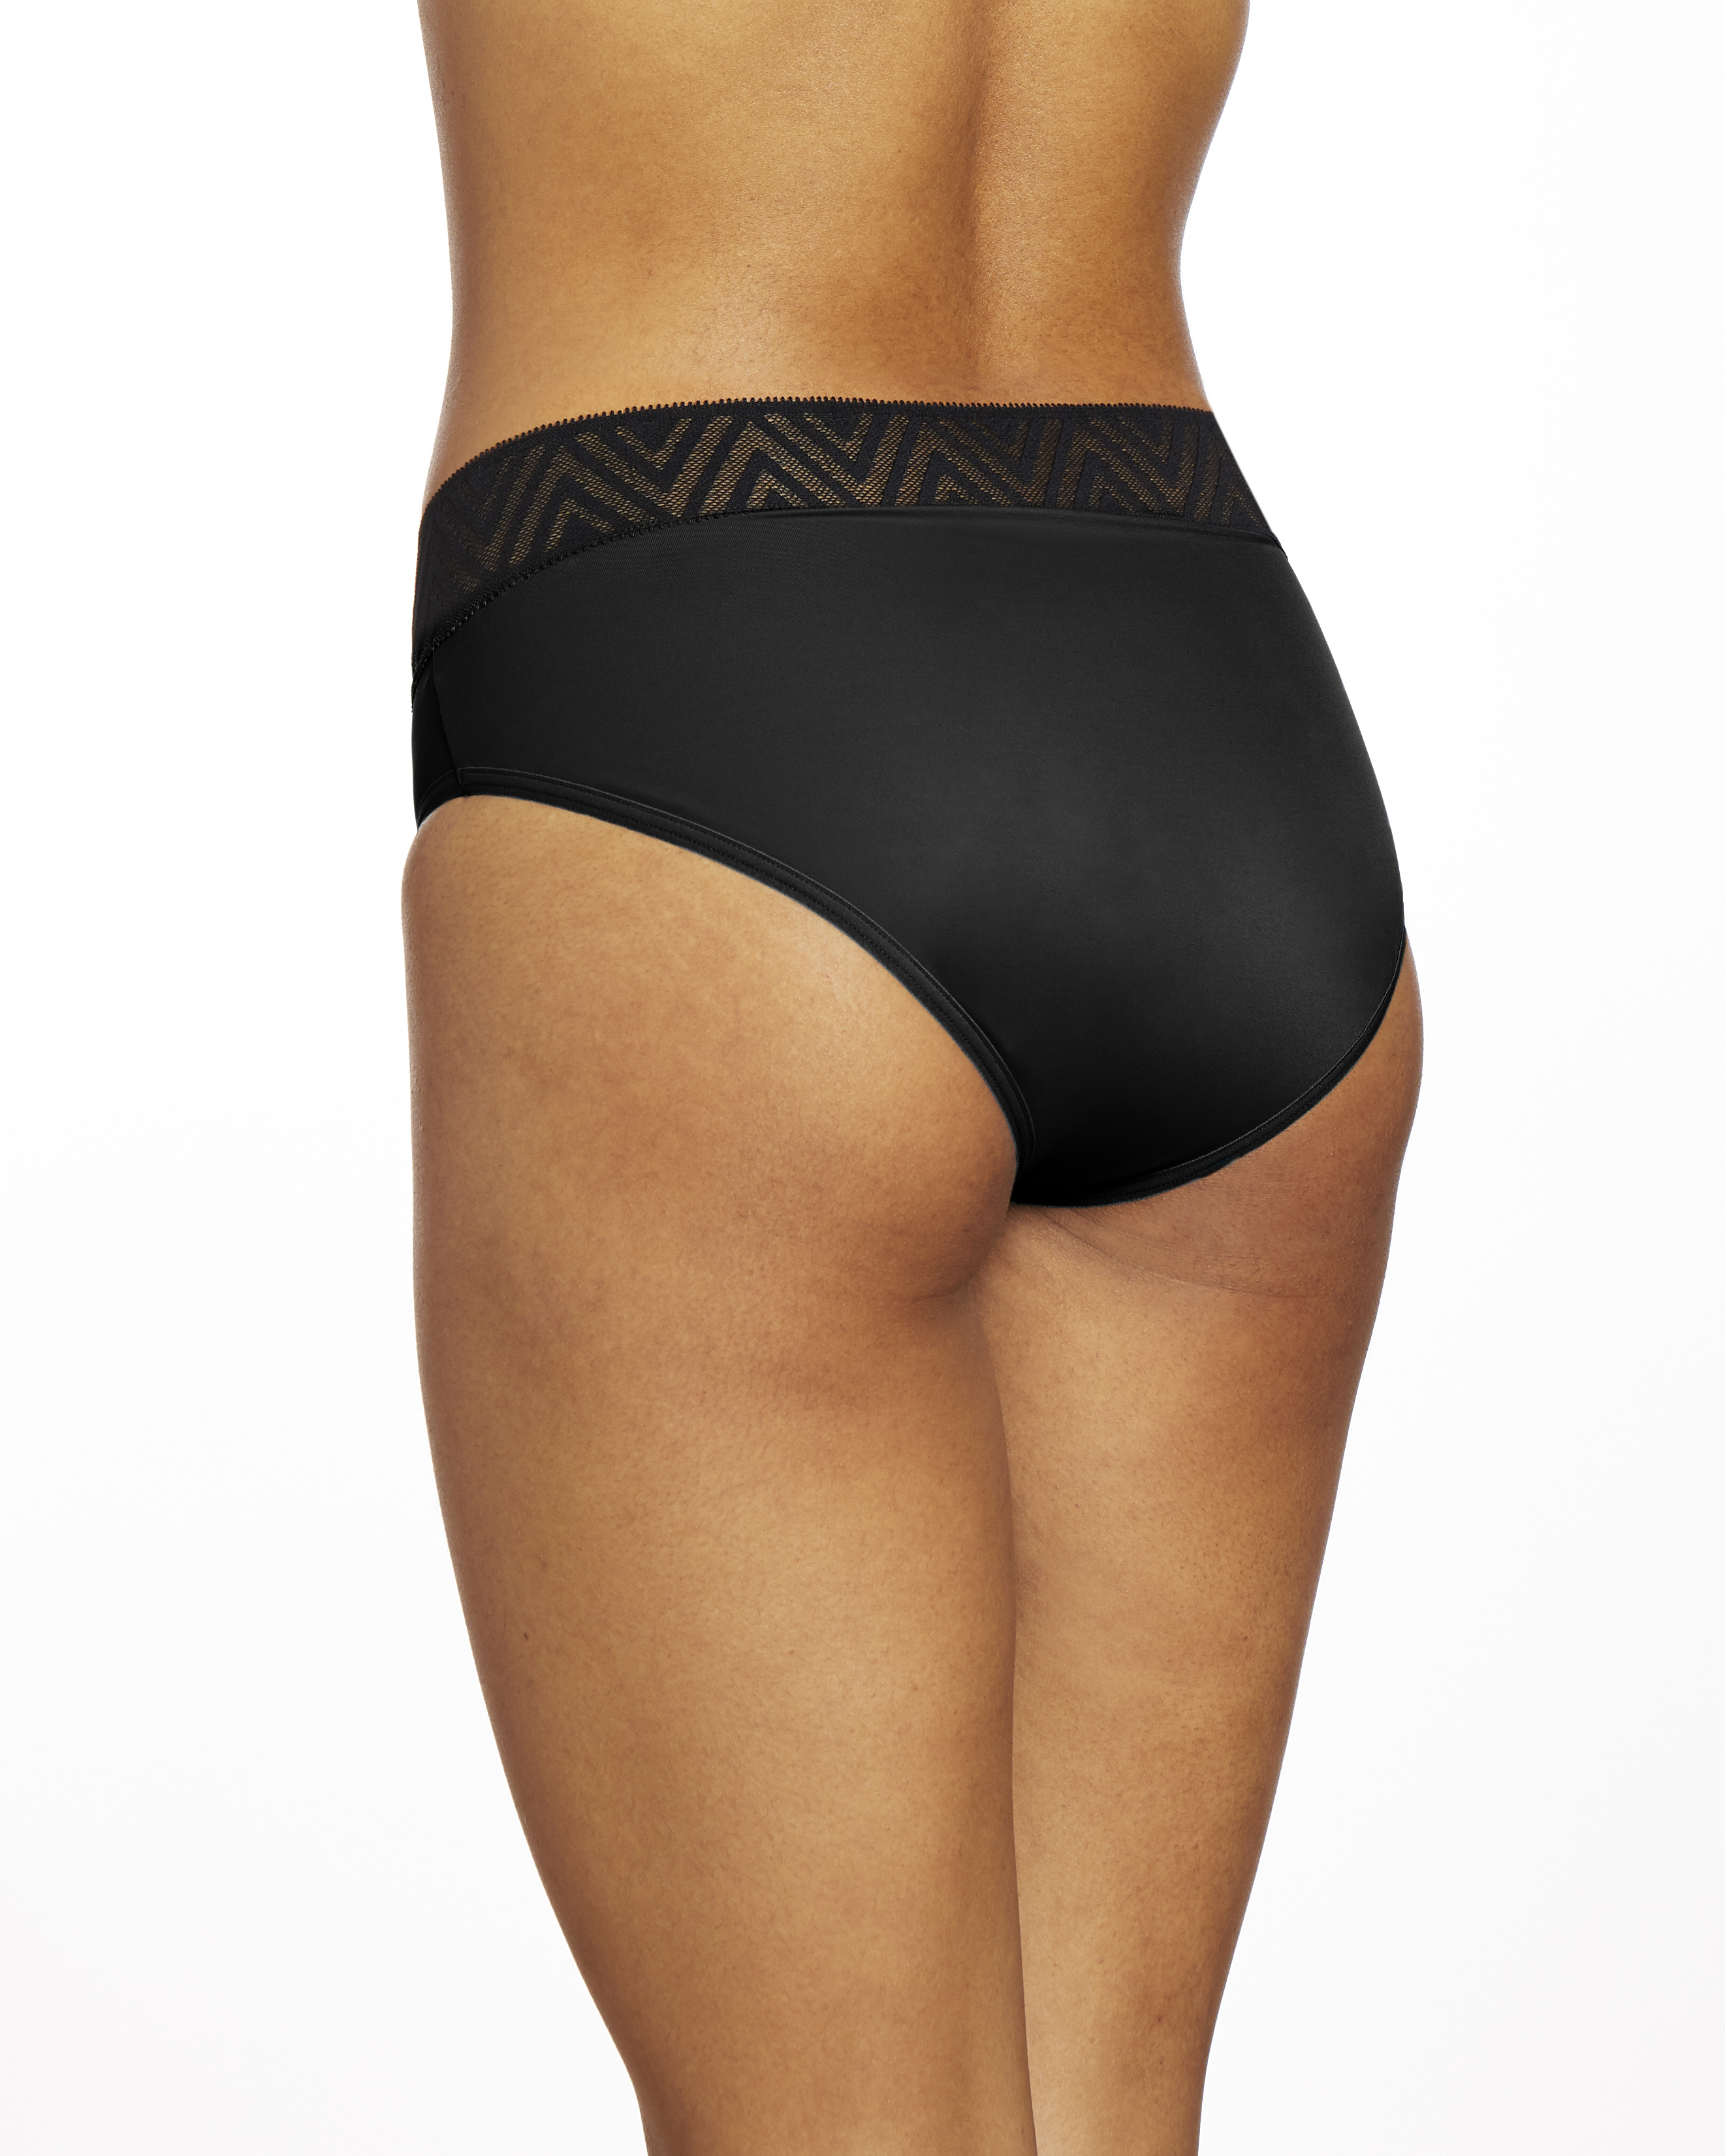 Thinx Period Proof Super Hiphugger Black XL